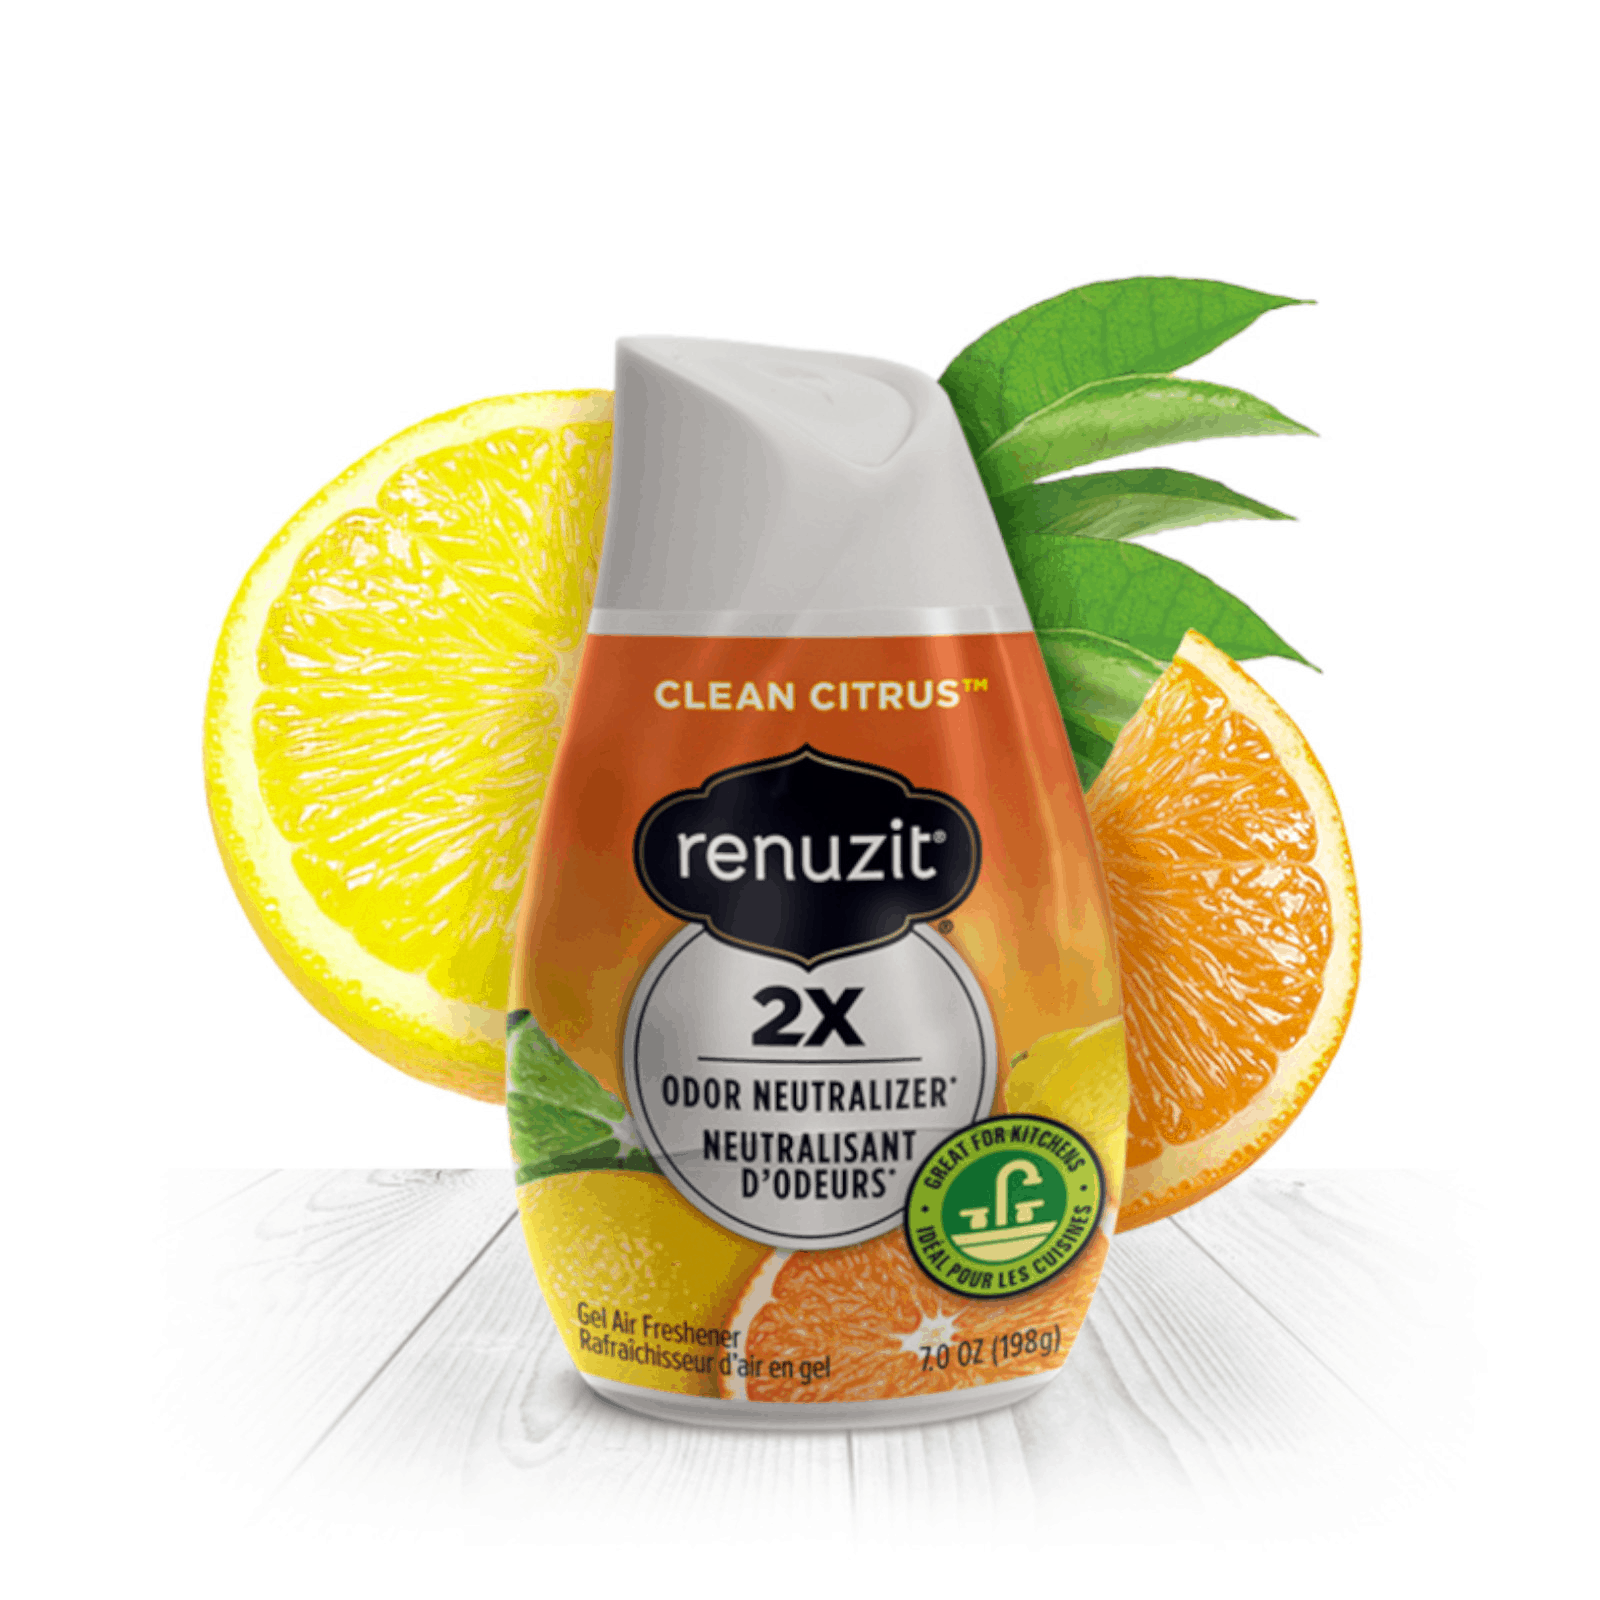 Renuzit Gel Air Freshener - Clean Citrus, 198g is the safest gel air fresheners. However best to keep out from small children as little kids should not be allowed toplay with them or eat them.